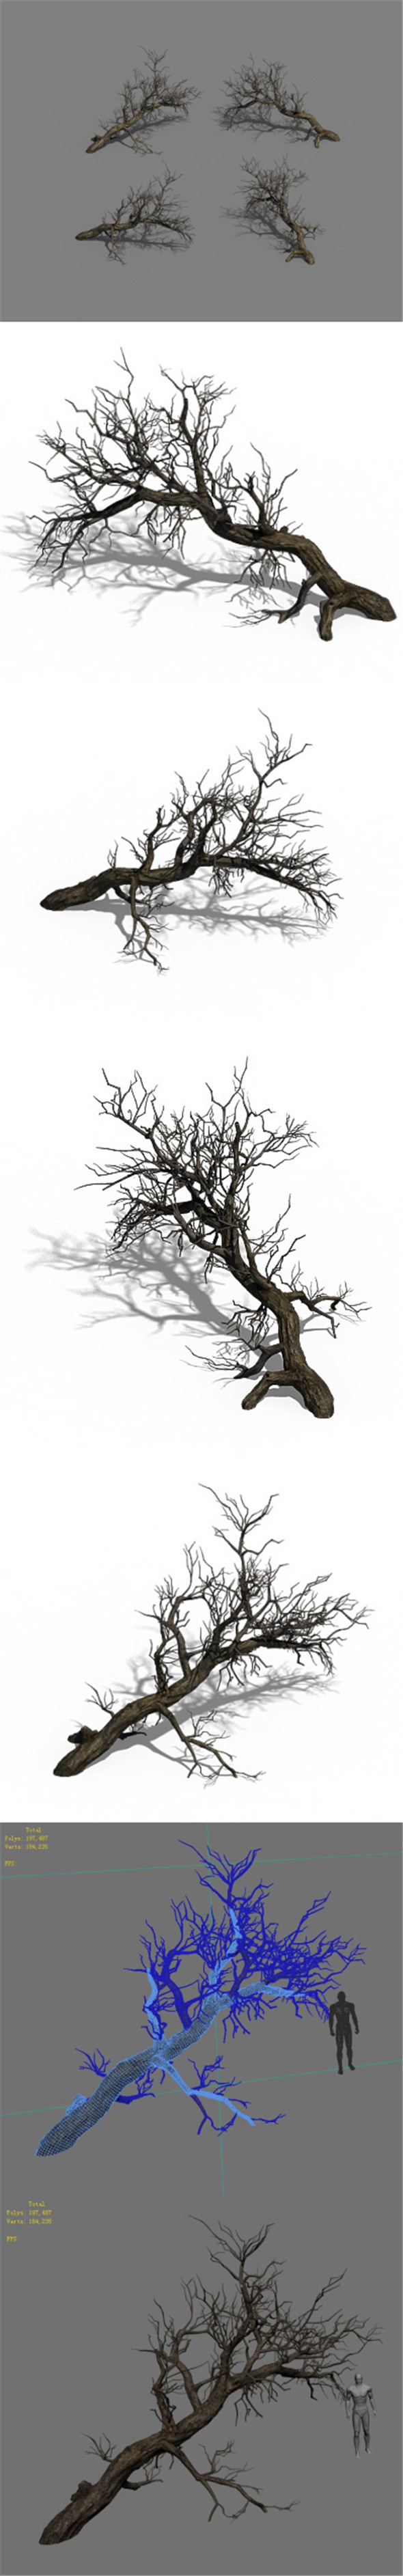 Winter snow - dead tree 02 - 3DOcean Item for Sale